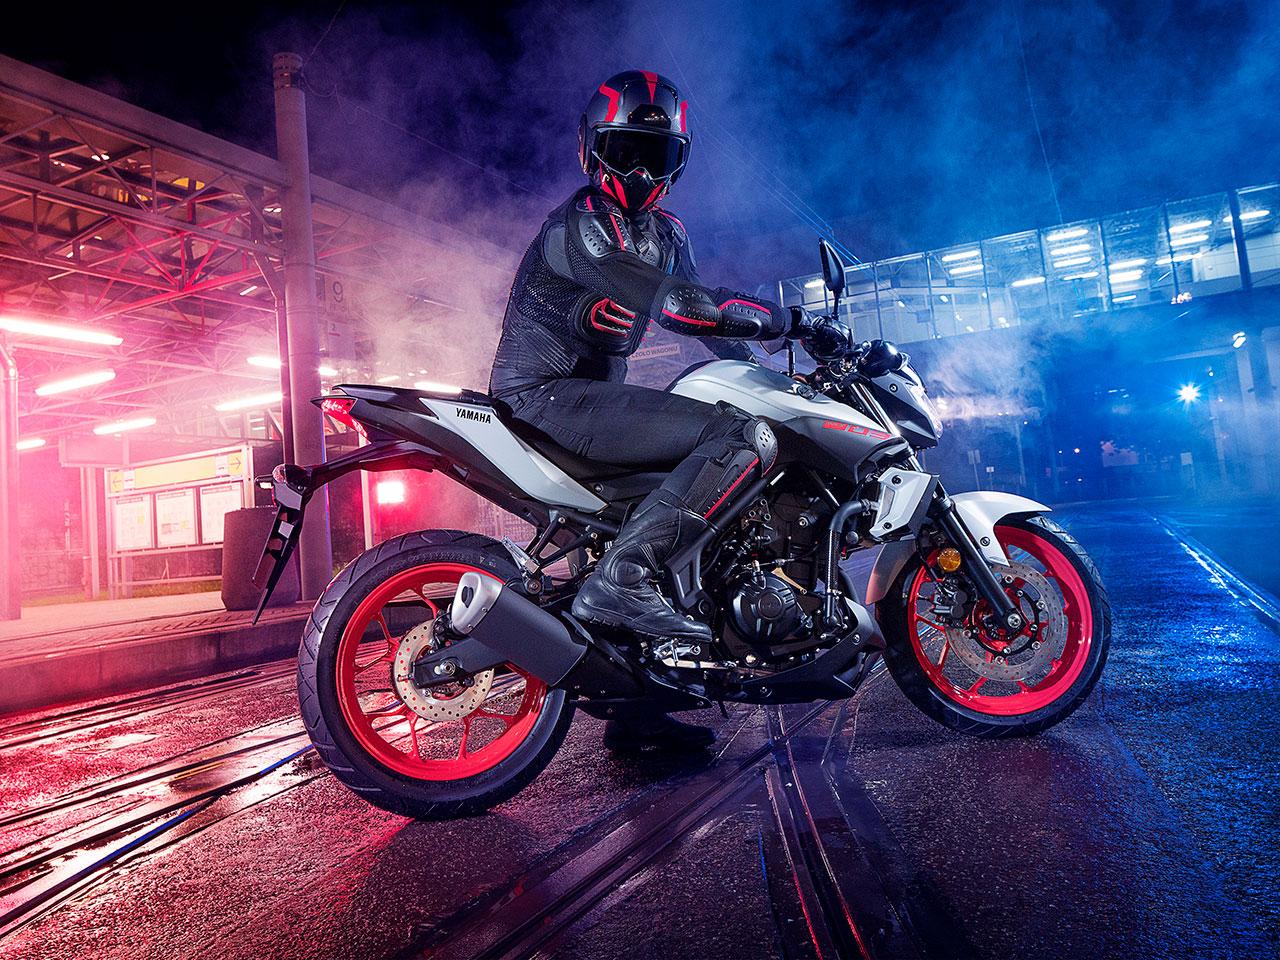 Yamaha MT-03 2019 in Ice Fluo colour with a rider